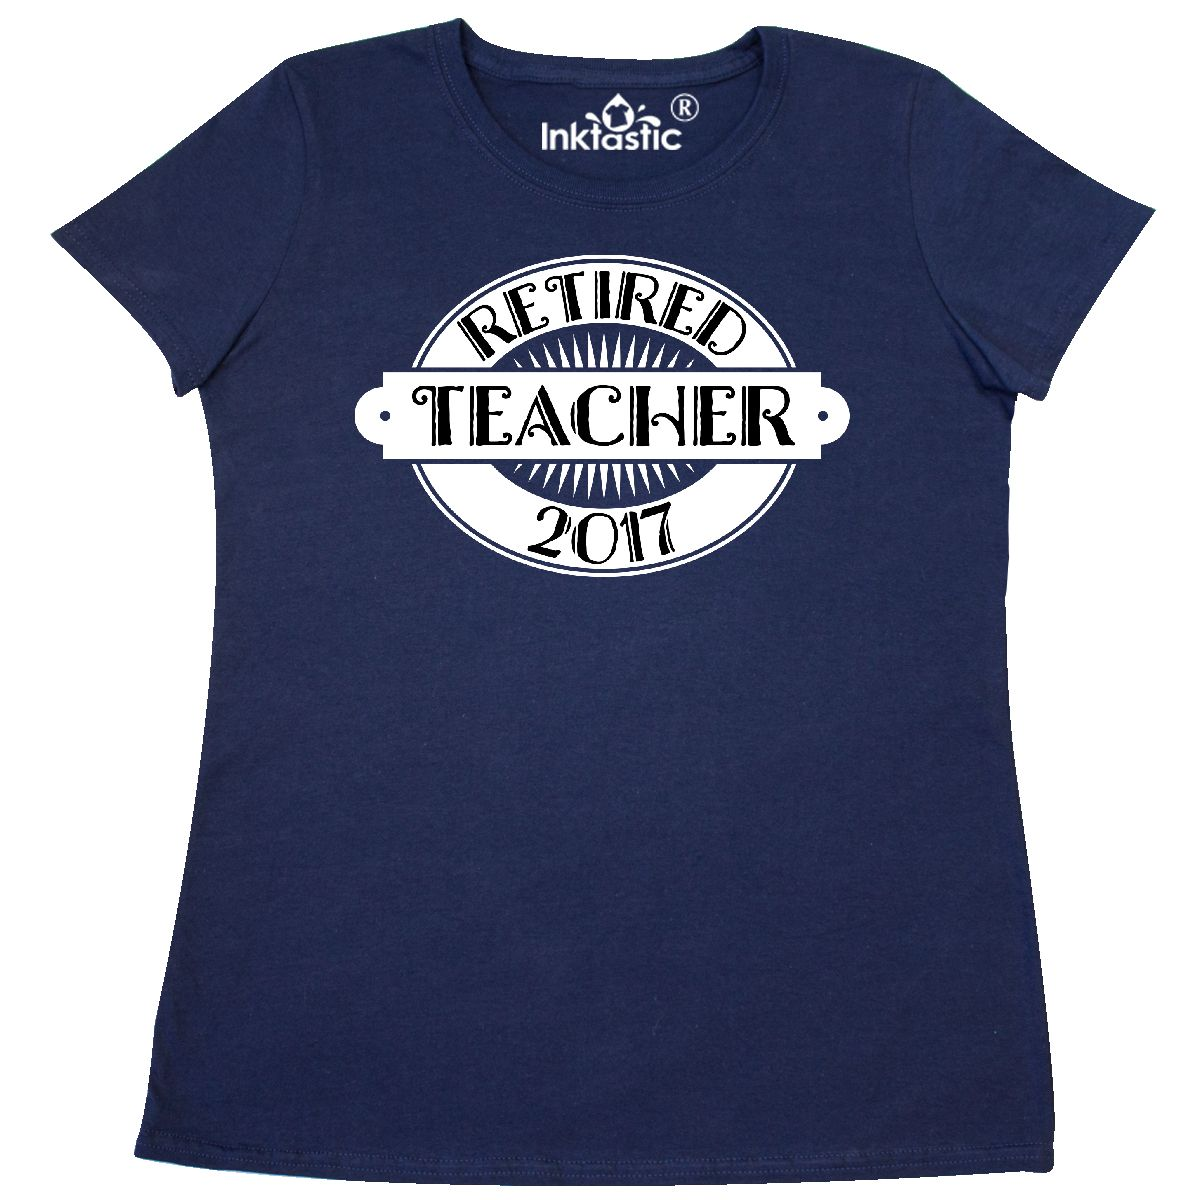 Inktastic 2017 Retired Teacher Retirement Gift Women's T-Shirt Party School High